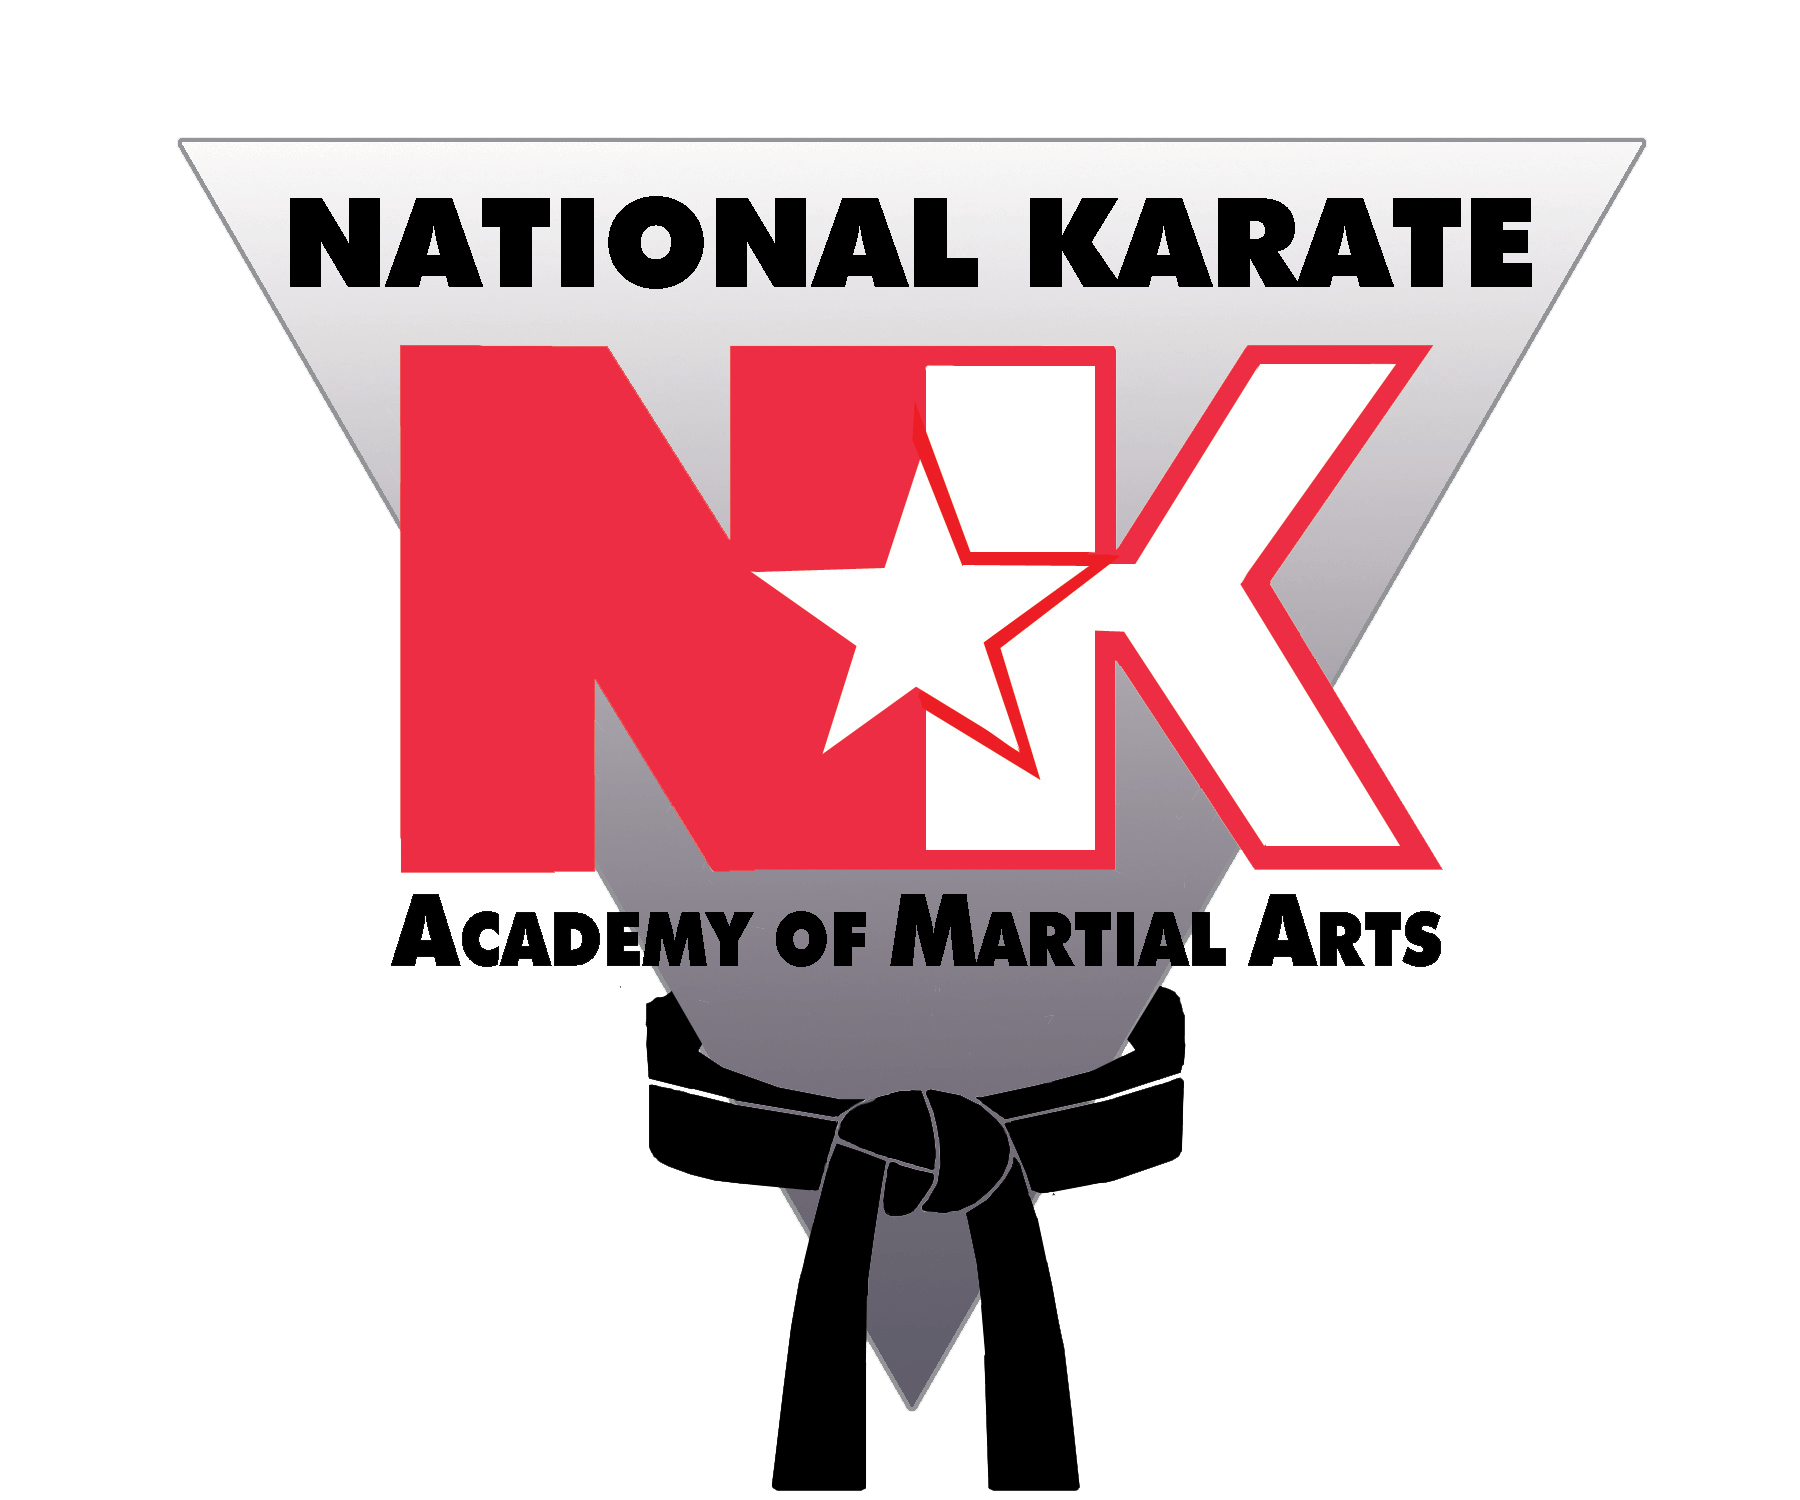 Teen clipart student teenager. About us national karate